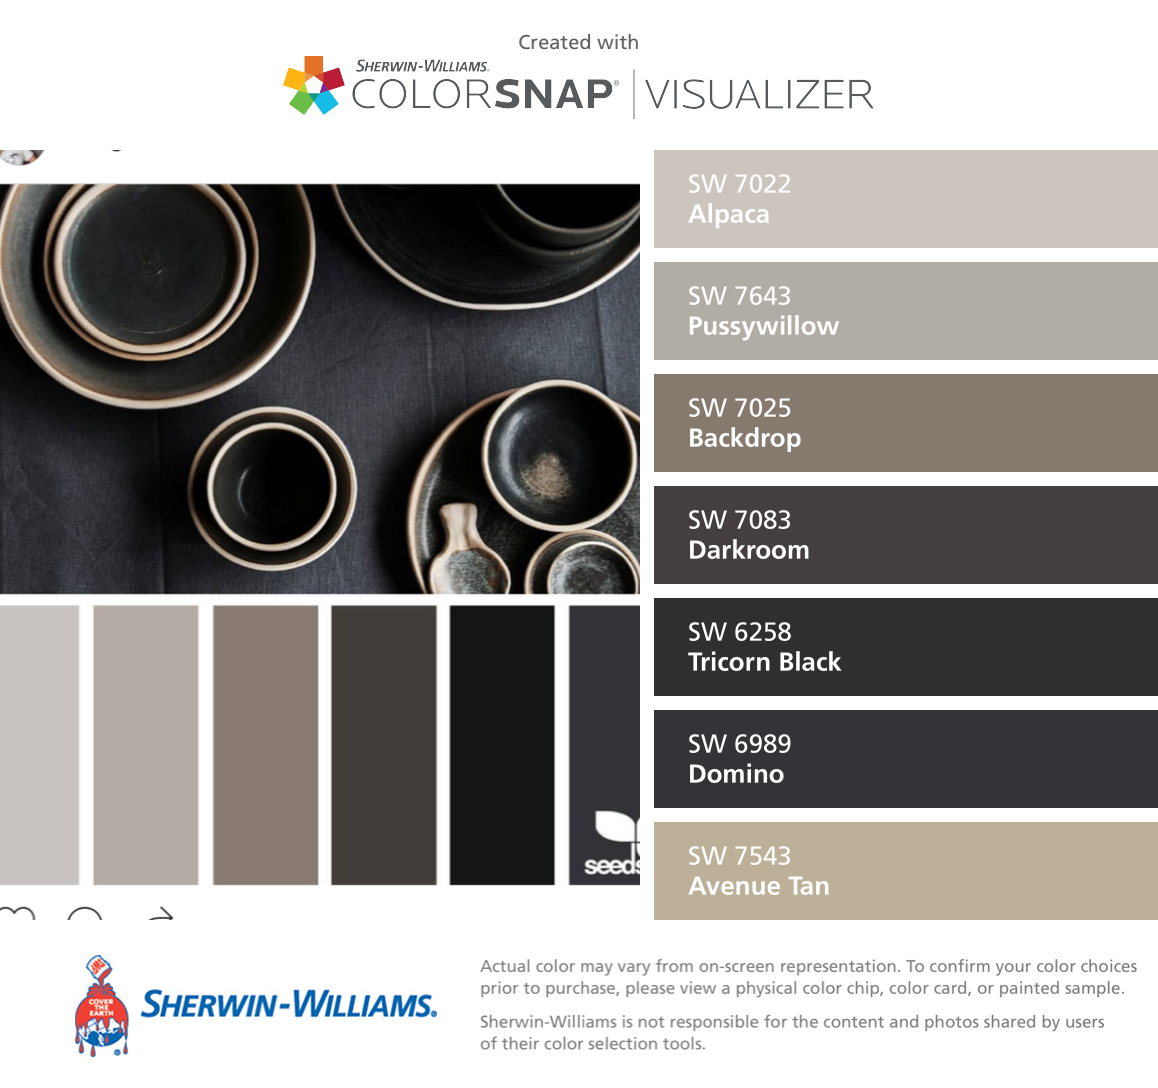 Sherwin williams paint colors sherwin williams 6249 storm cloud - I Found These Colors With Colorsnap Visualizer For Iphone By Sherwin Williams Alpaca